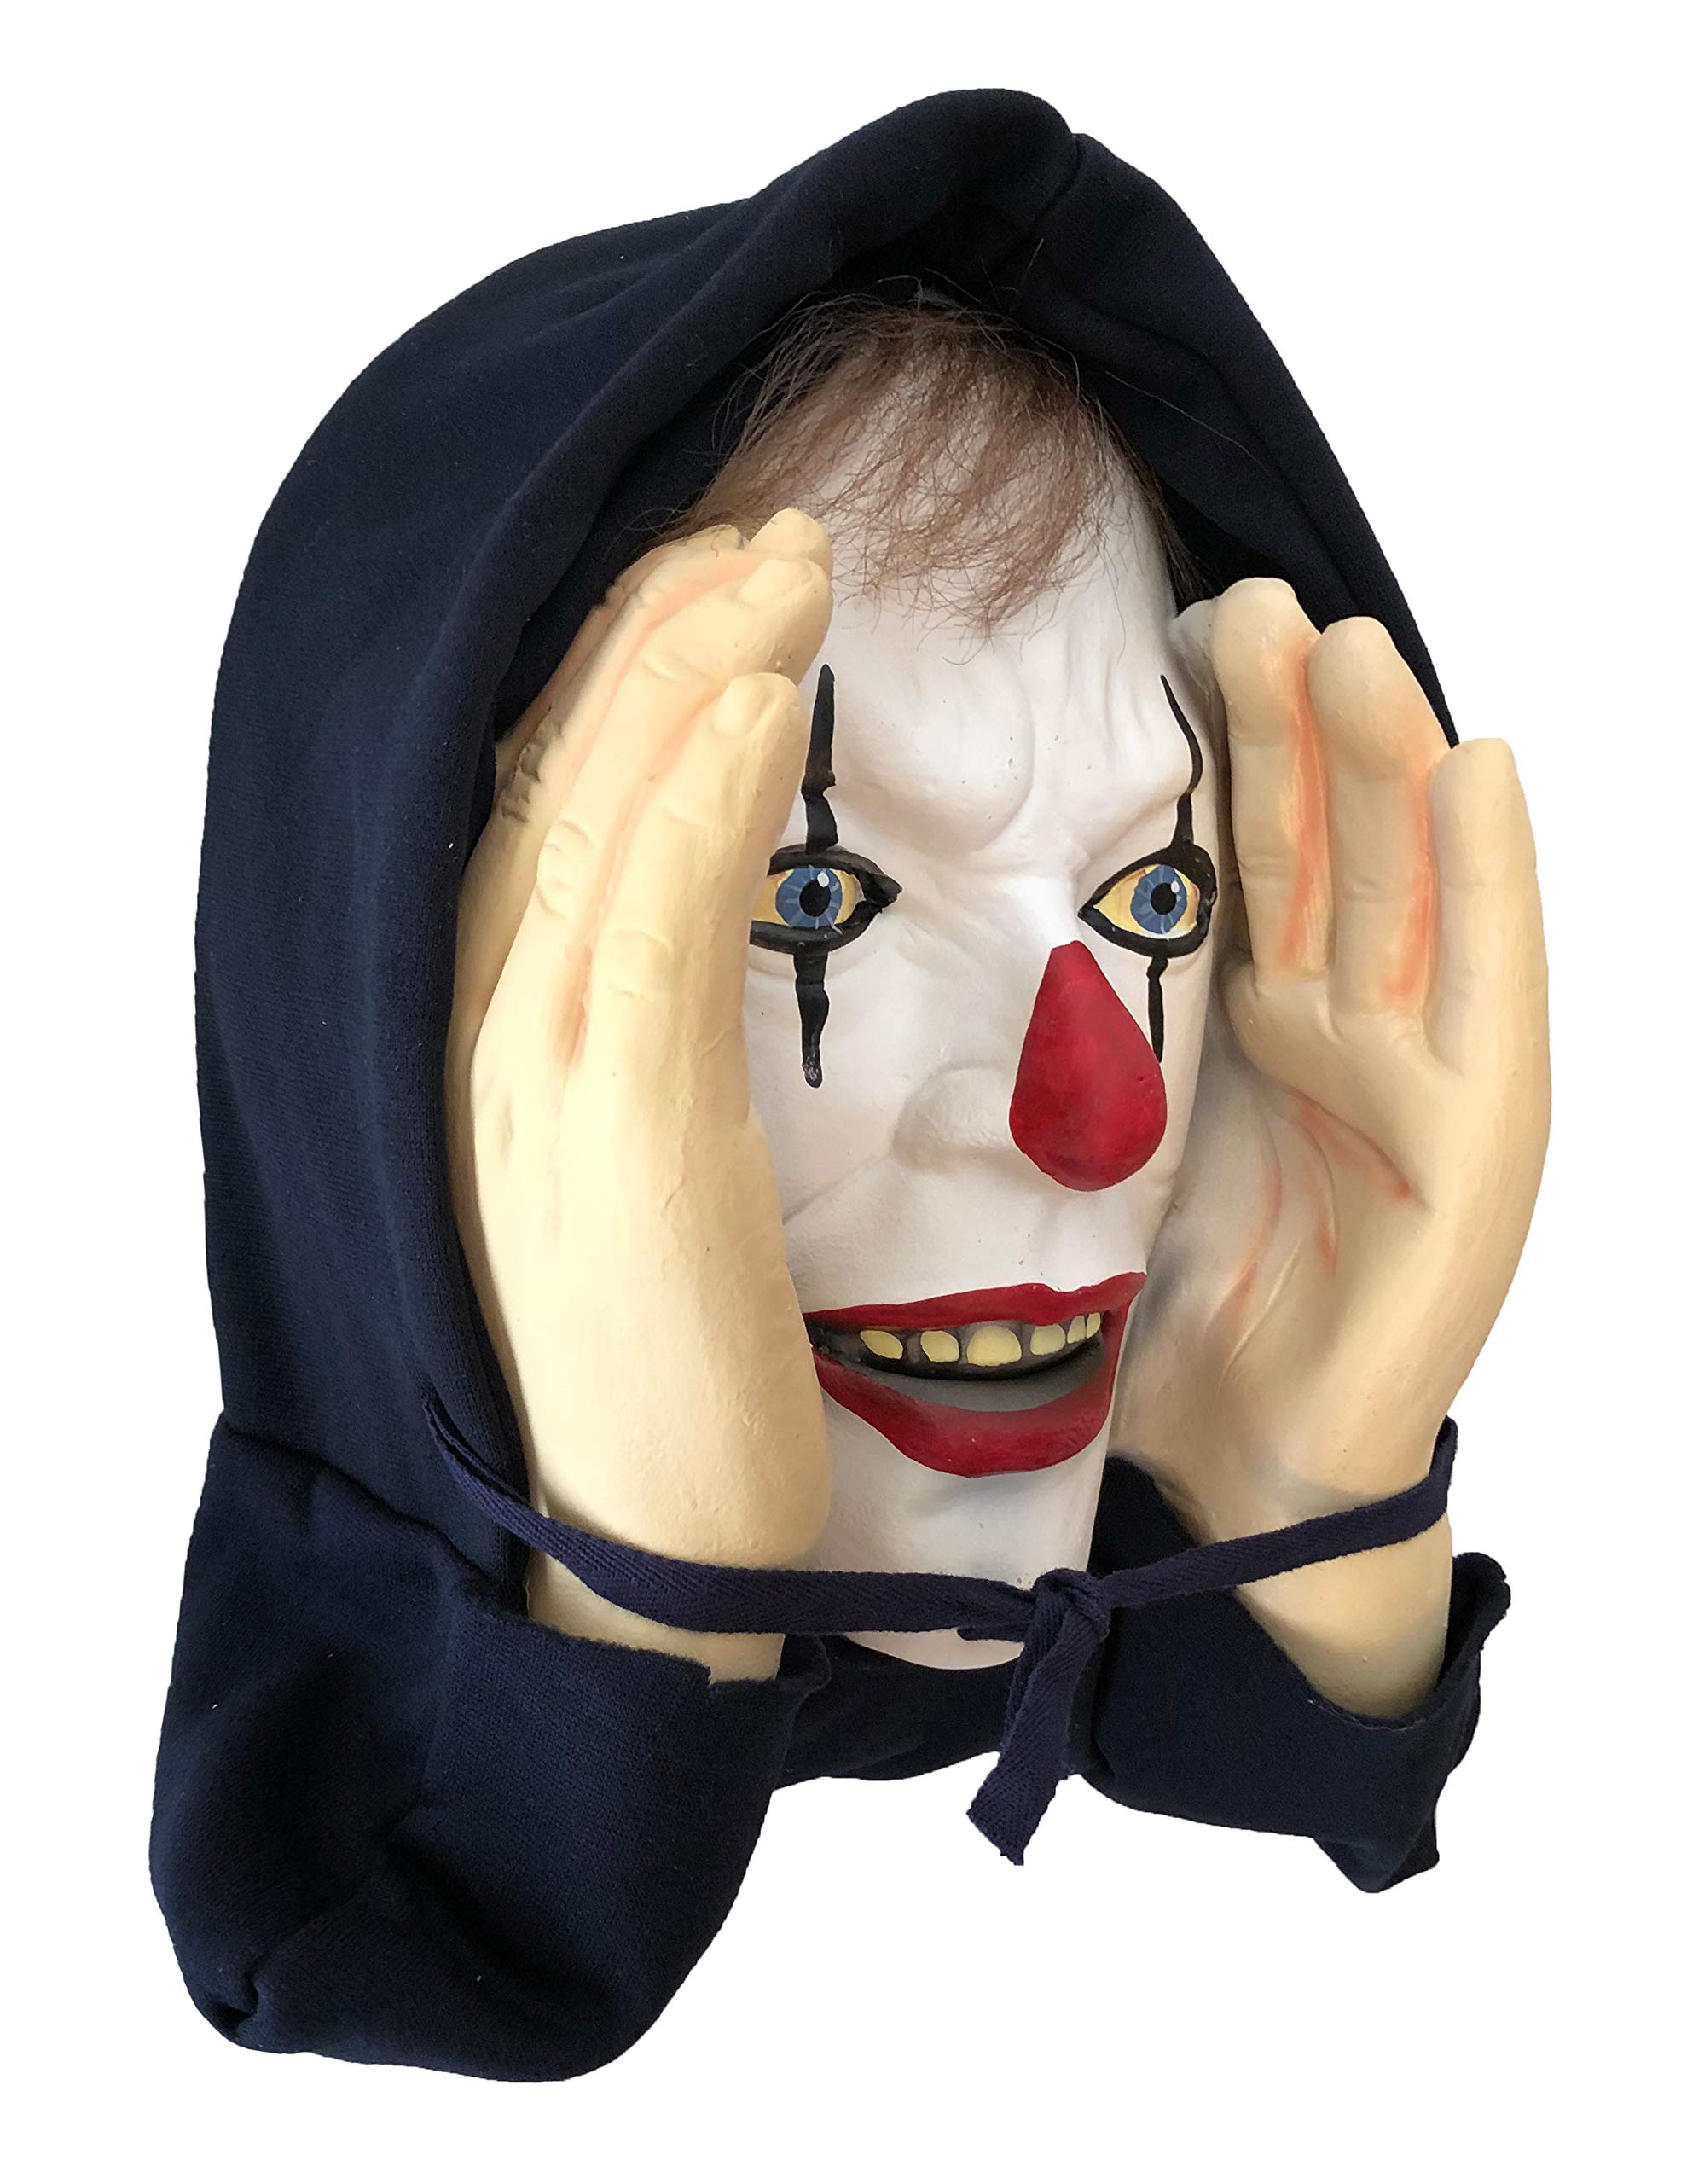 Scary Peeper Giggle Clown by Scary Peeper Fright At First Sight (Image #4)